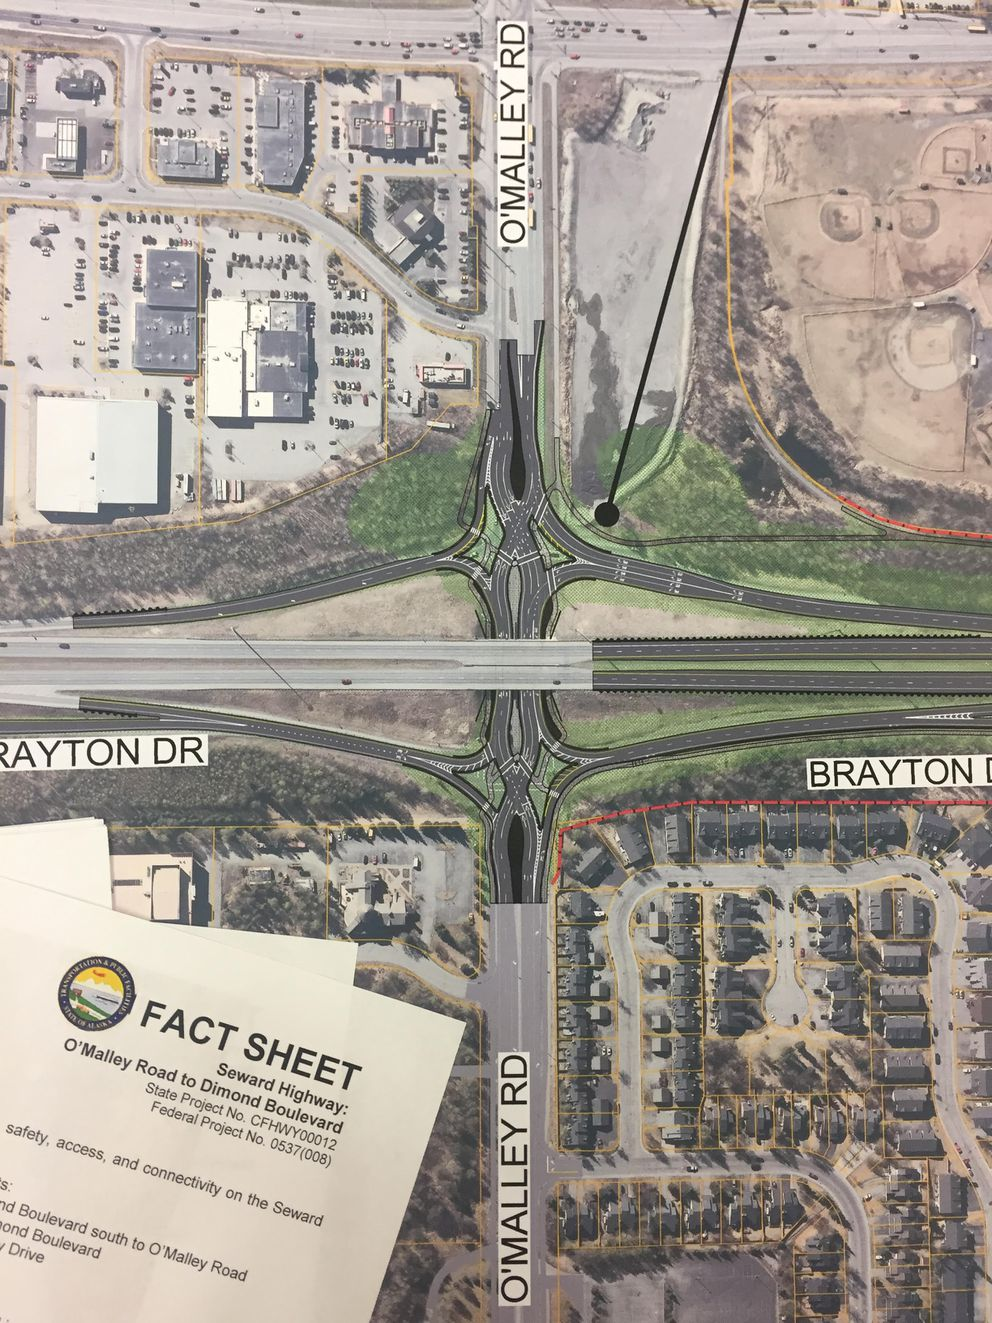 A close-up of the plans for an O'Malley Road 'diverging diamond' interchange on the Seward Highway. (Devin Kelly/ASN)